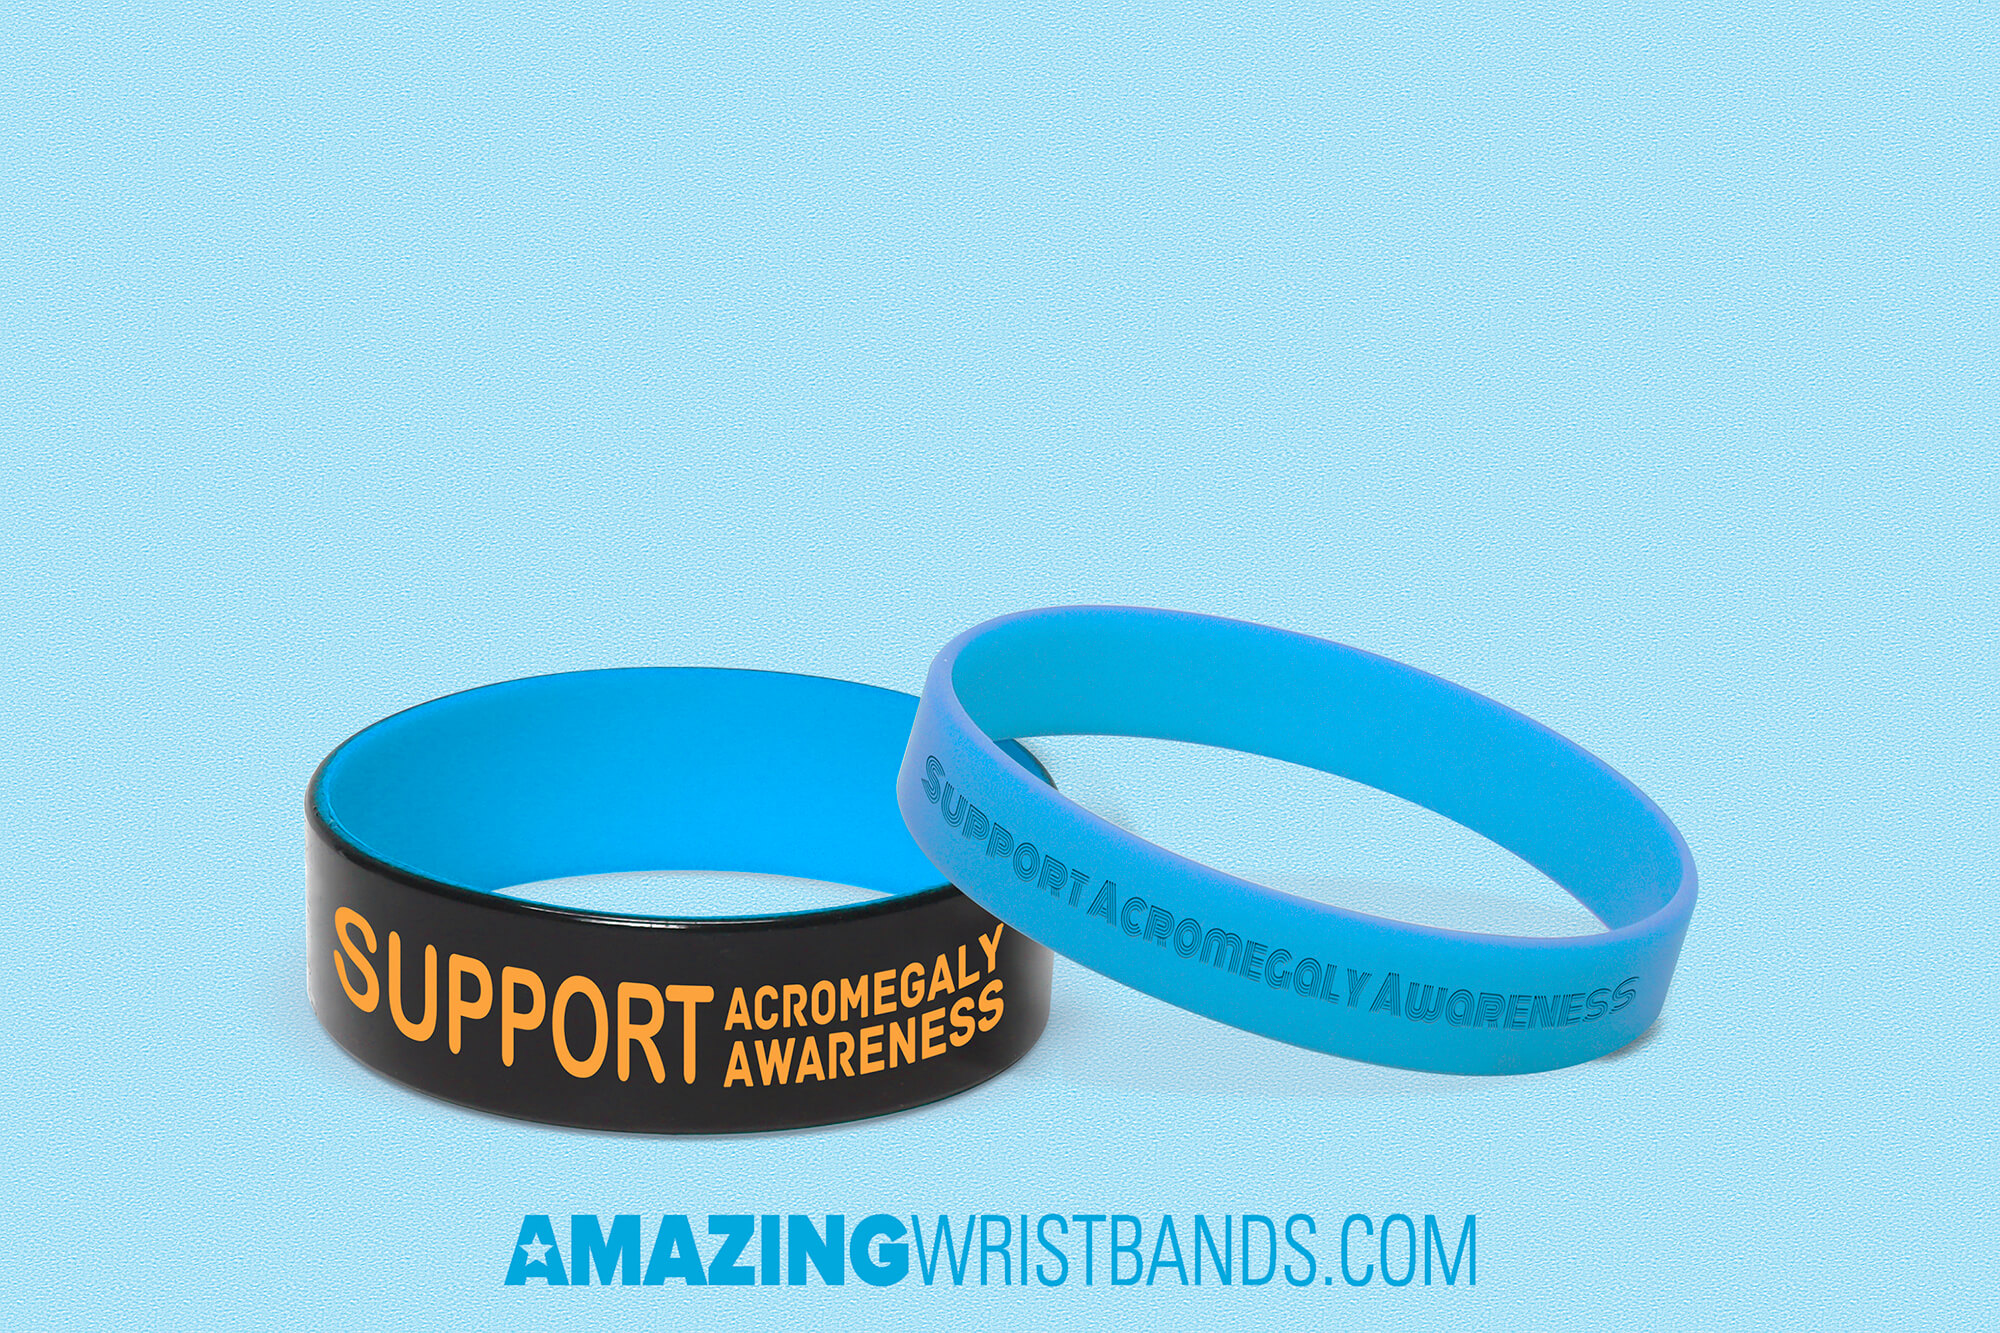 Acromegaly Awareness Wristbands